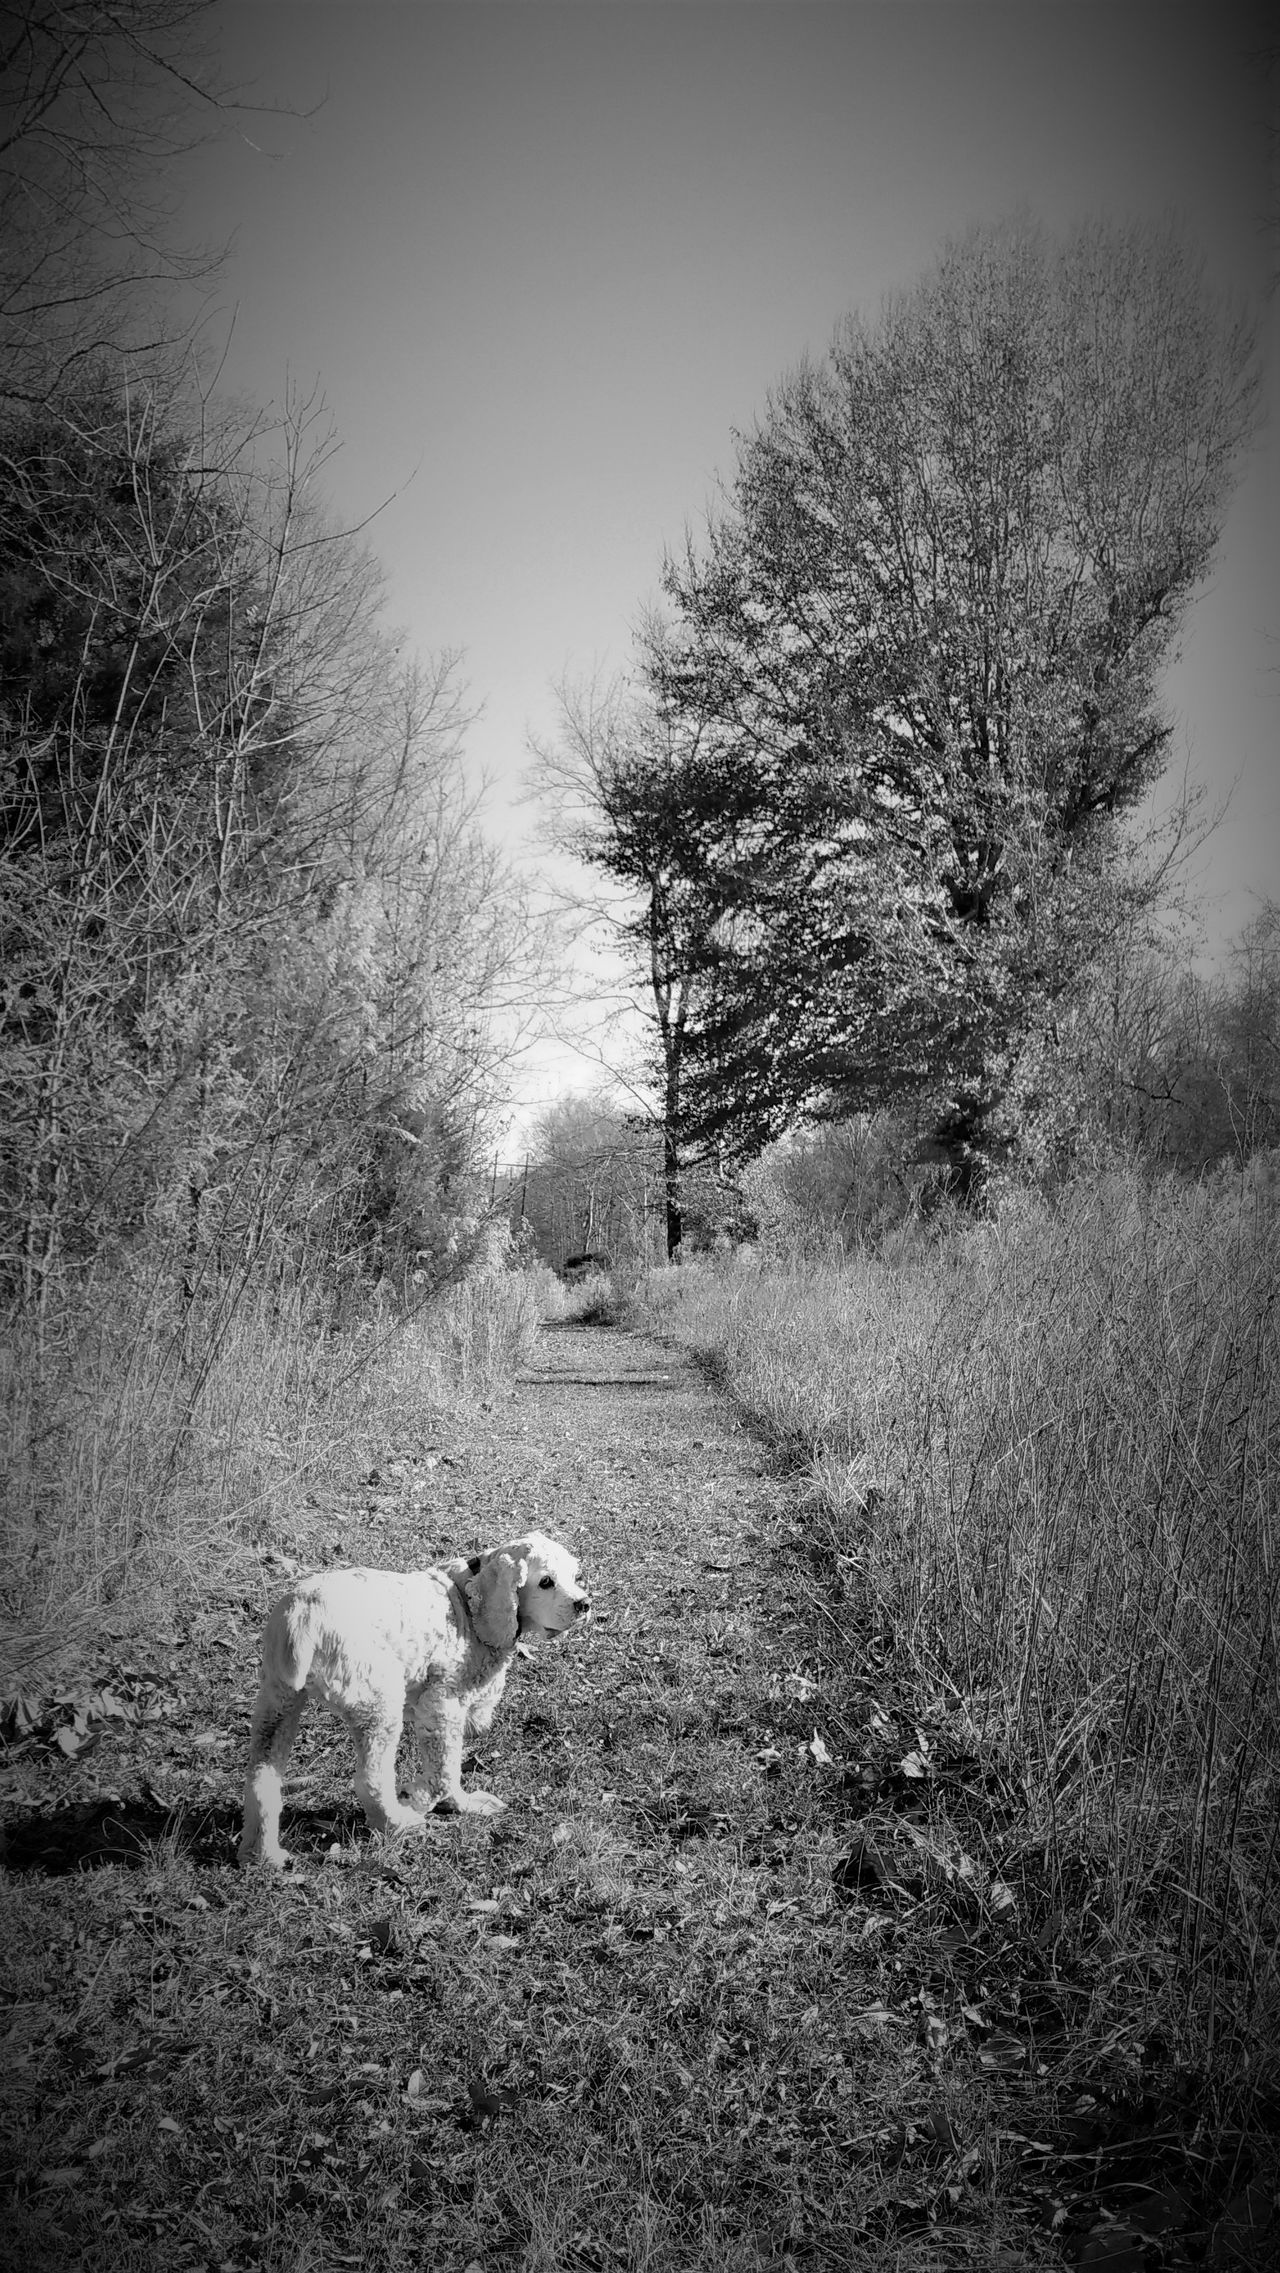 Animal Themes Autumn Of Life Blackandwhite Photography Cocker Spaniel  Come With Me Don't Leave Me End Of Life End Of Life... Fall Of Life Furry Friend Goodbye Happy Trails Invitation Journey Last Adventure Life Journey Long Walk Long Walk Home Lost Outdoors The End